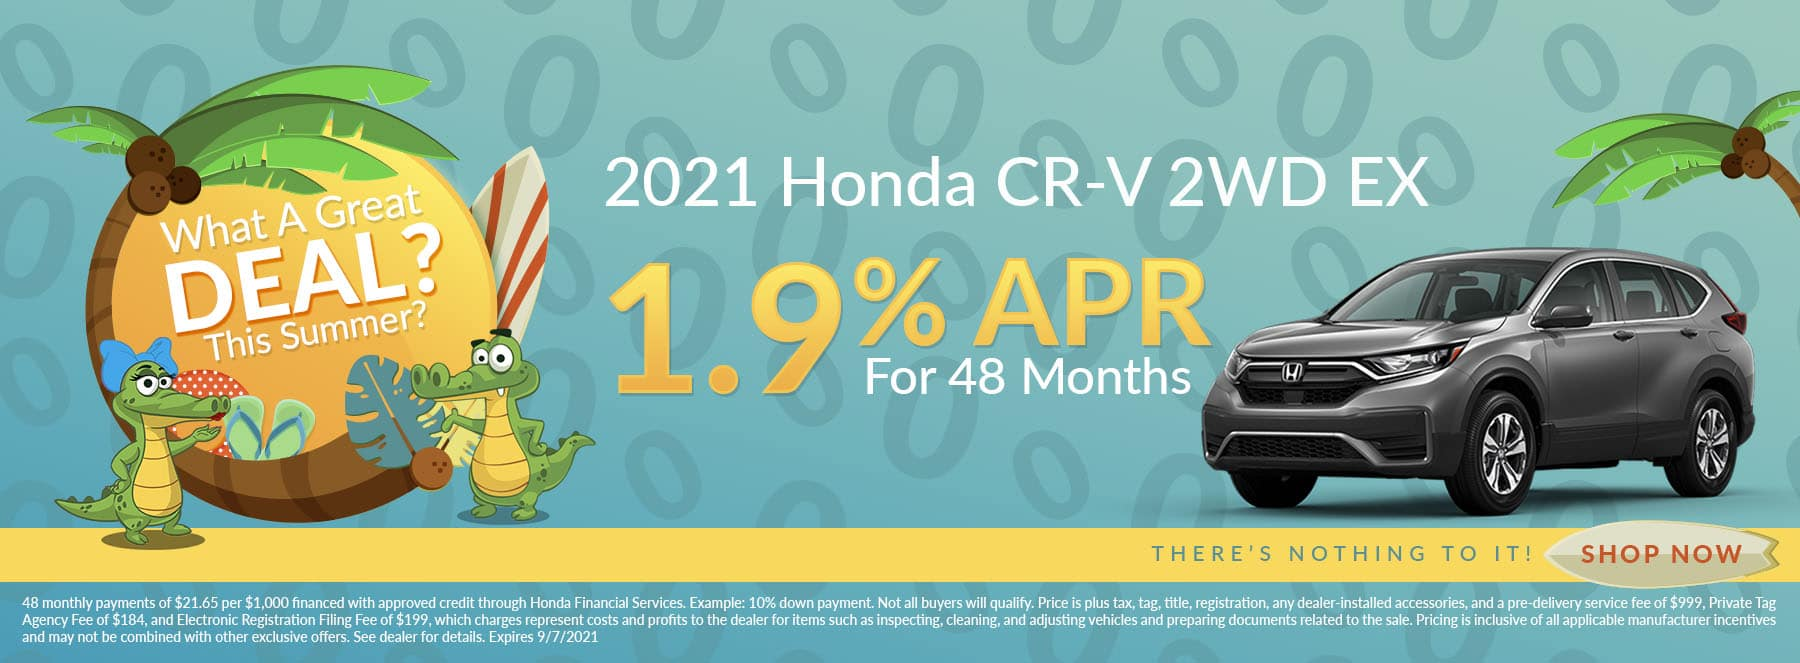 Want A Great Deal This Summer? | 2021 Honda CR-V 2WD EX | 1.9% APR For 48 Months